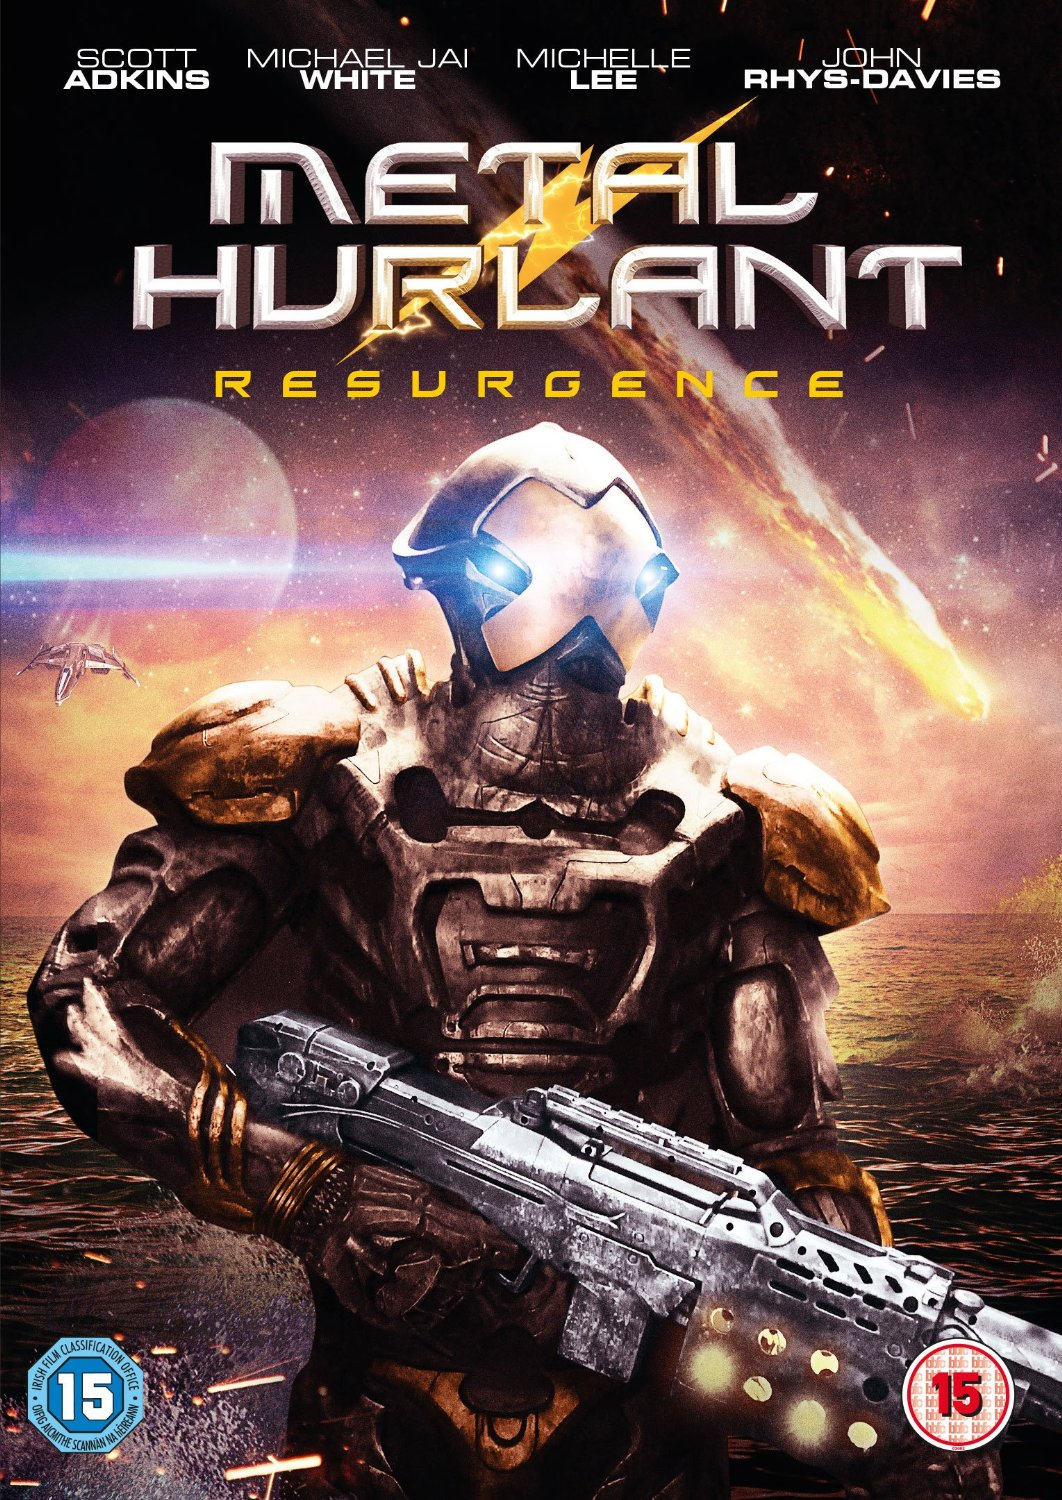 Metal Hurlant Resurgence DVD review